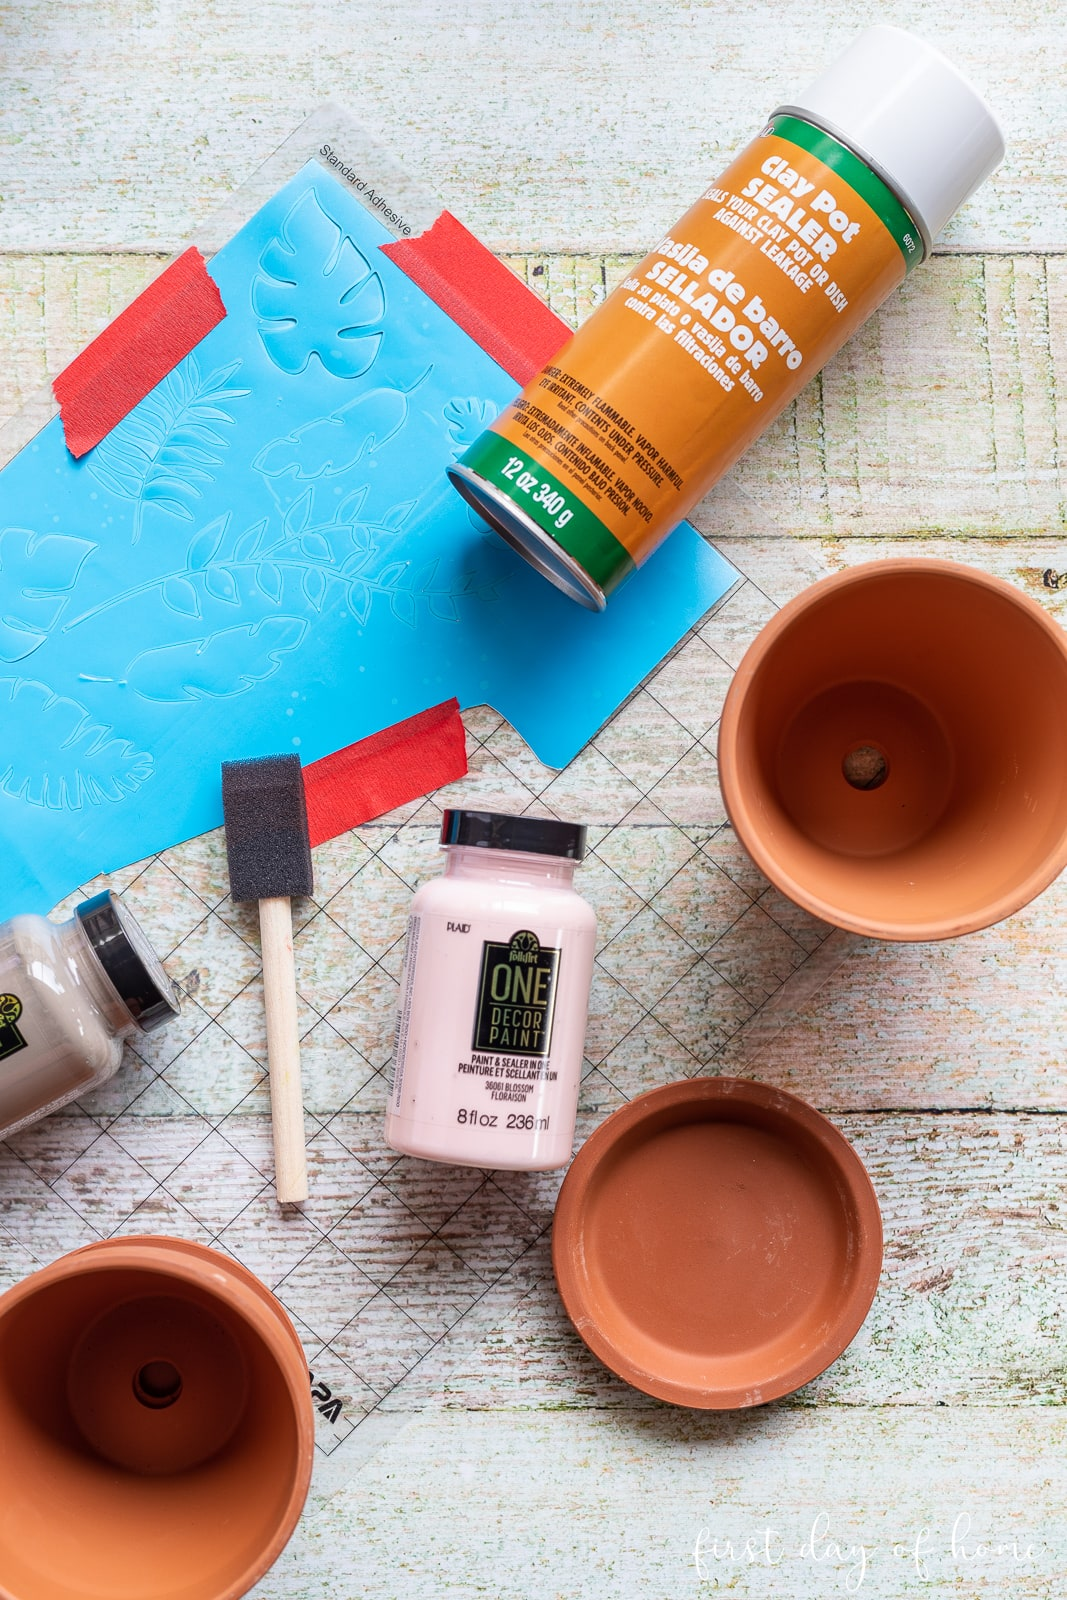 Terracotta pots, clay pot sealer, outdoor paint, and stencil film supplies for painted flower pot crafts